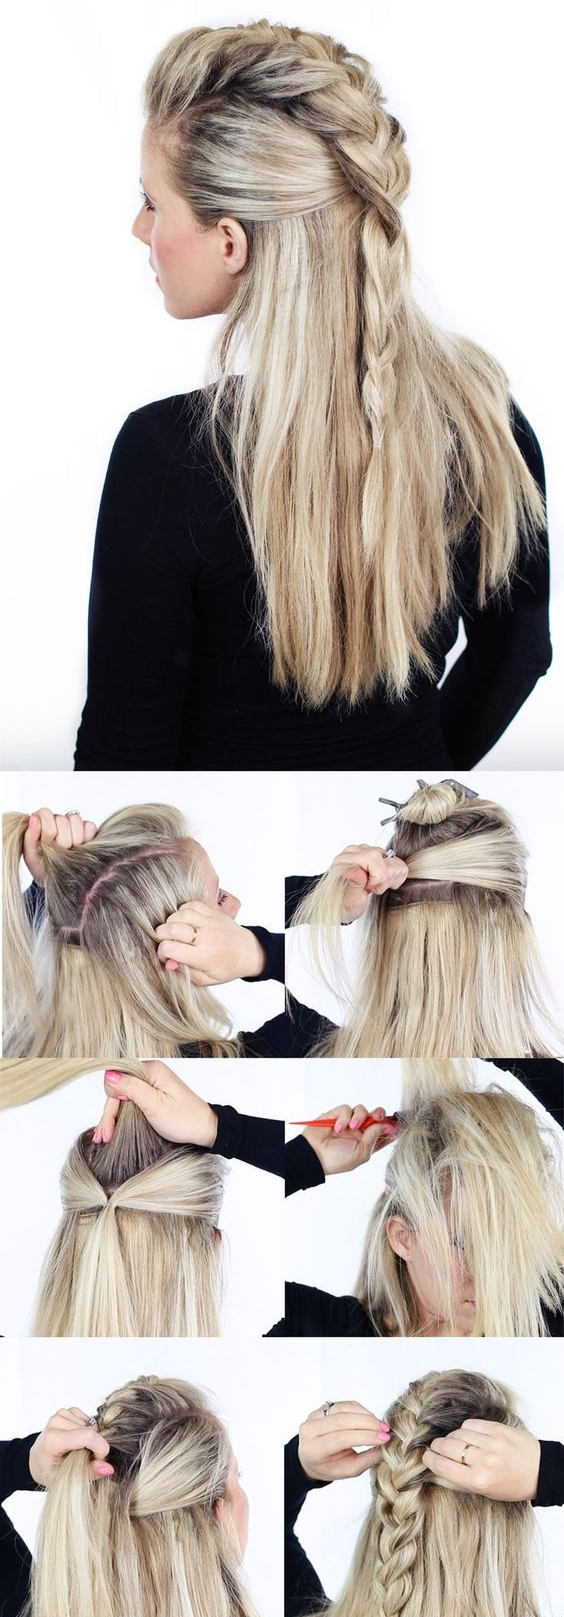 Very Long Hair For Hairstyles Women's 2018 6